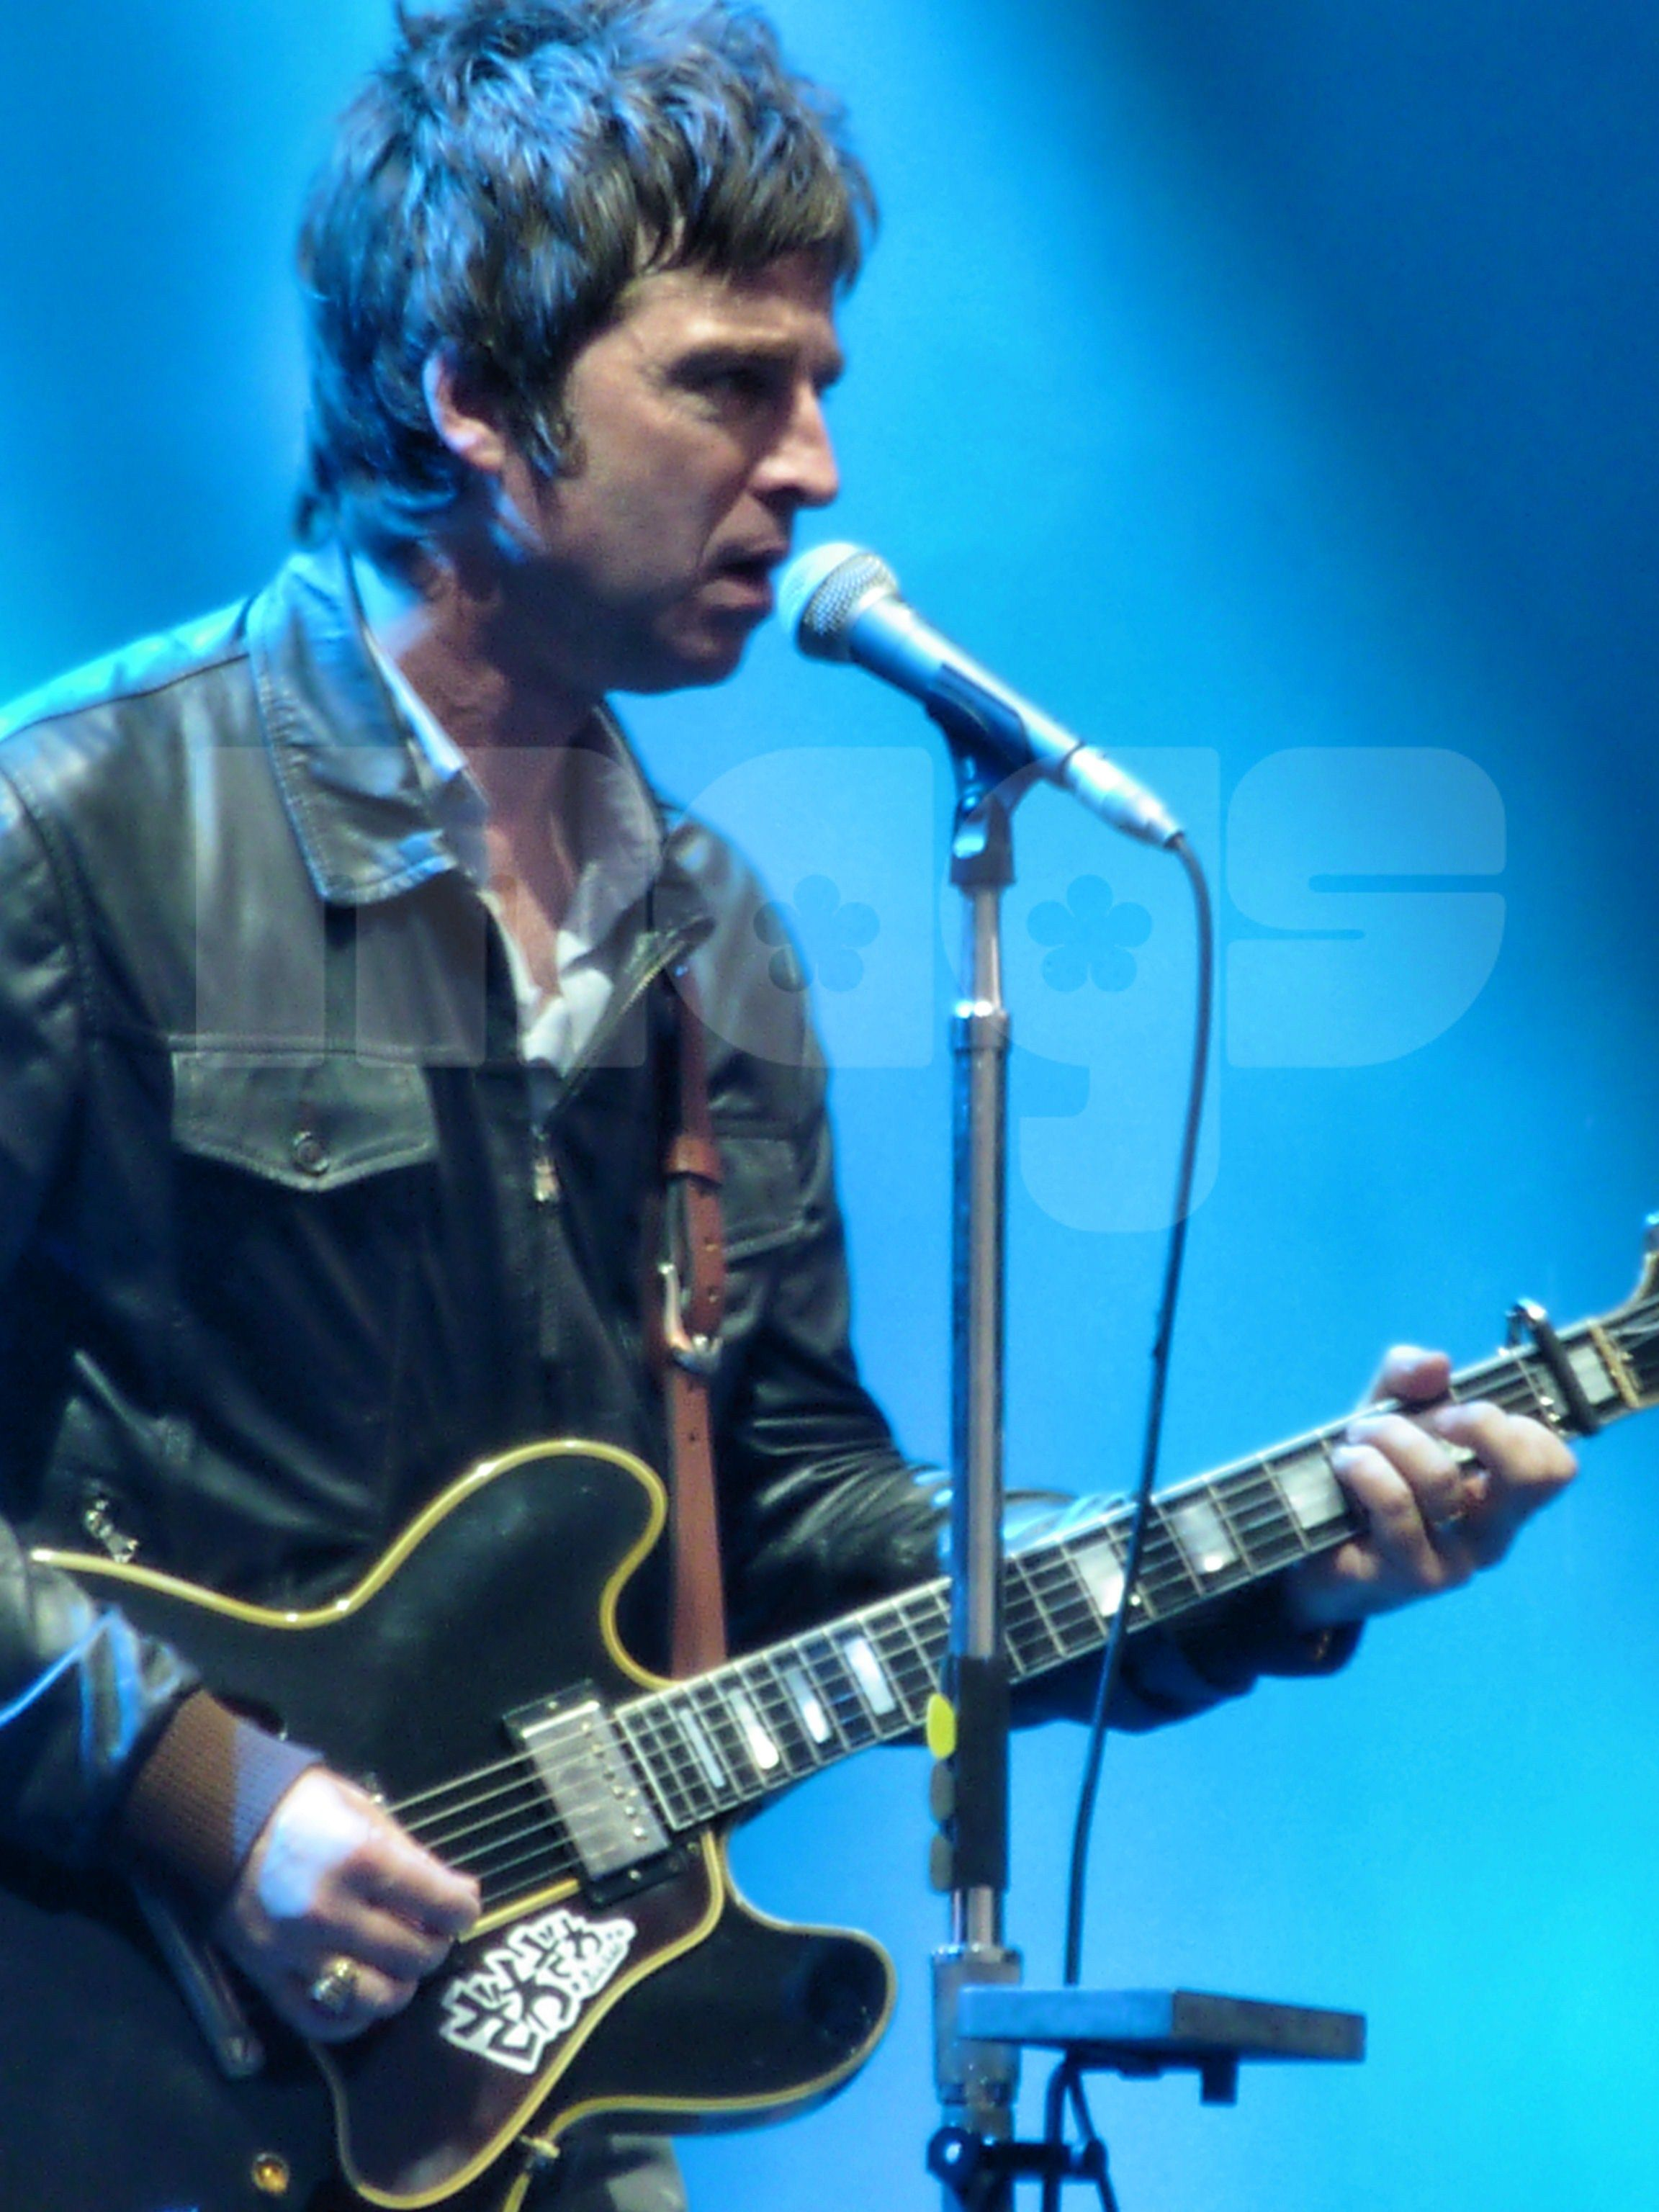 Noel Gallagher | Noel Gallagher/Oasis Addiction in 2019